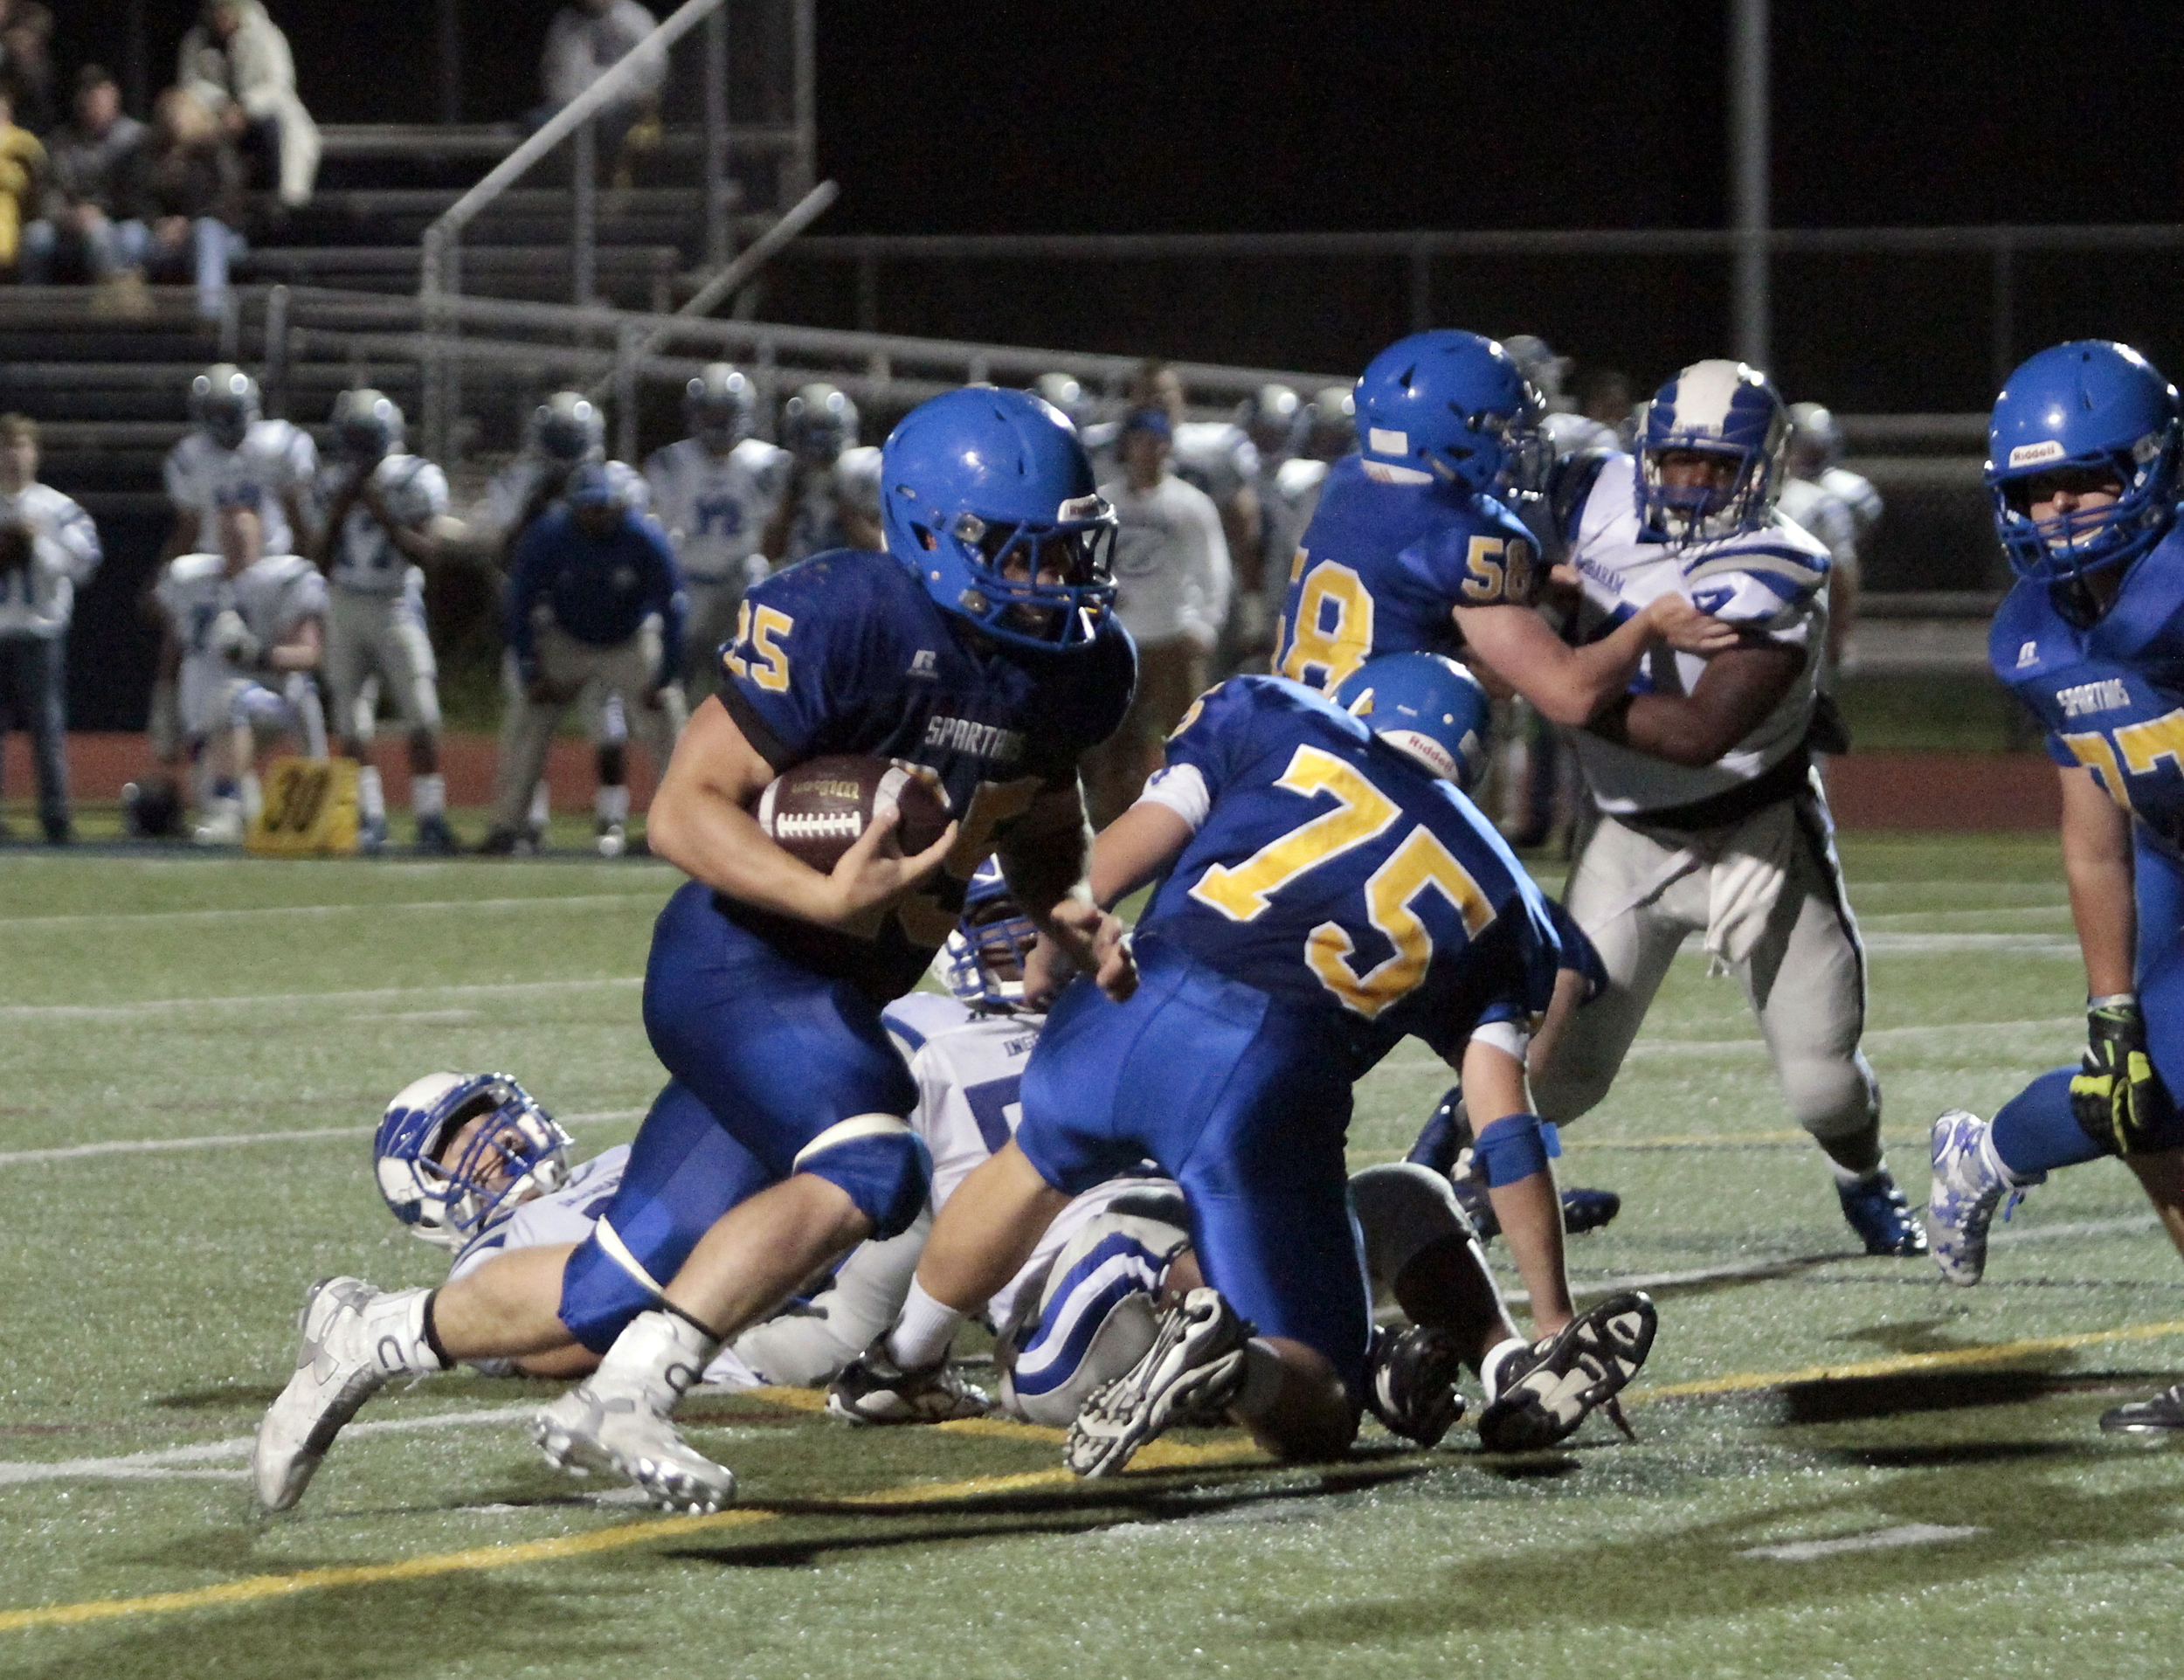 Bainbridge running back/linebacker Sam Wysong plows through the line at home against Ingraham. The senior Spartan gave a stellar early season performance, managing two touchdowns, 23 for 120 yards rushing and one reception for 23 yards.